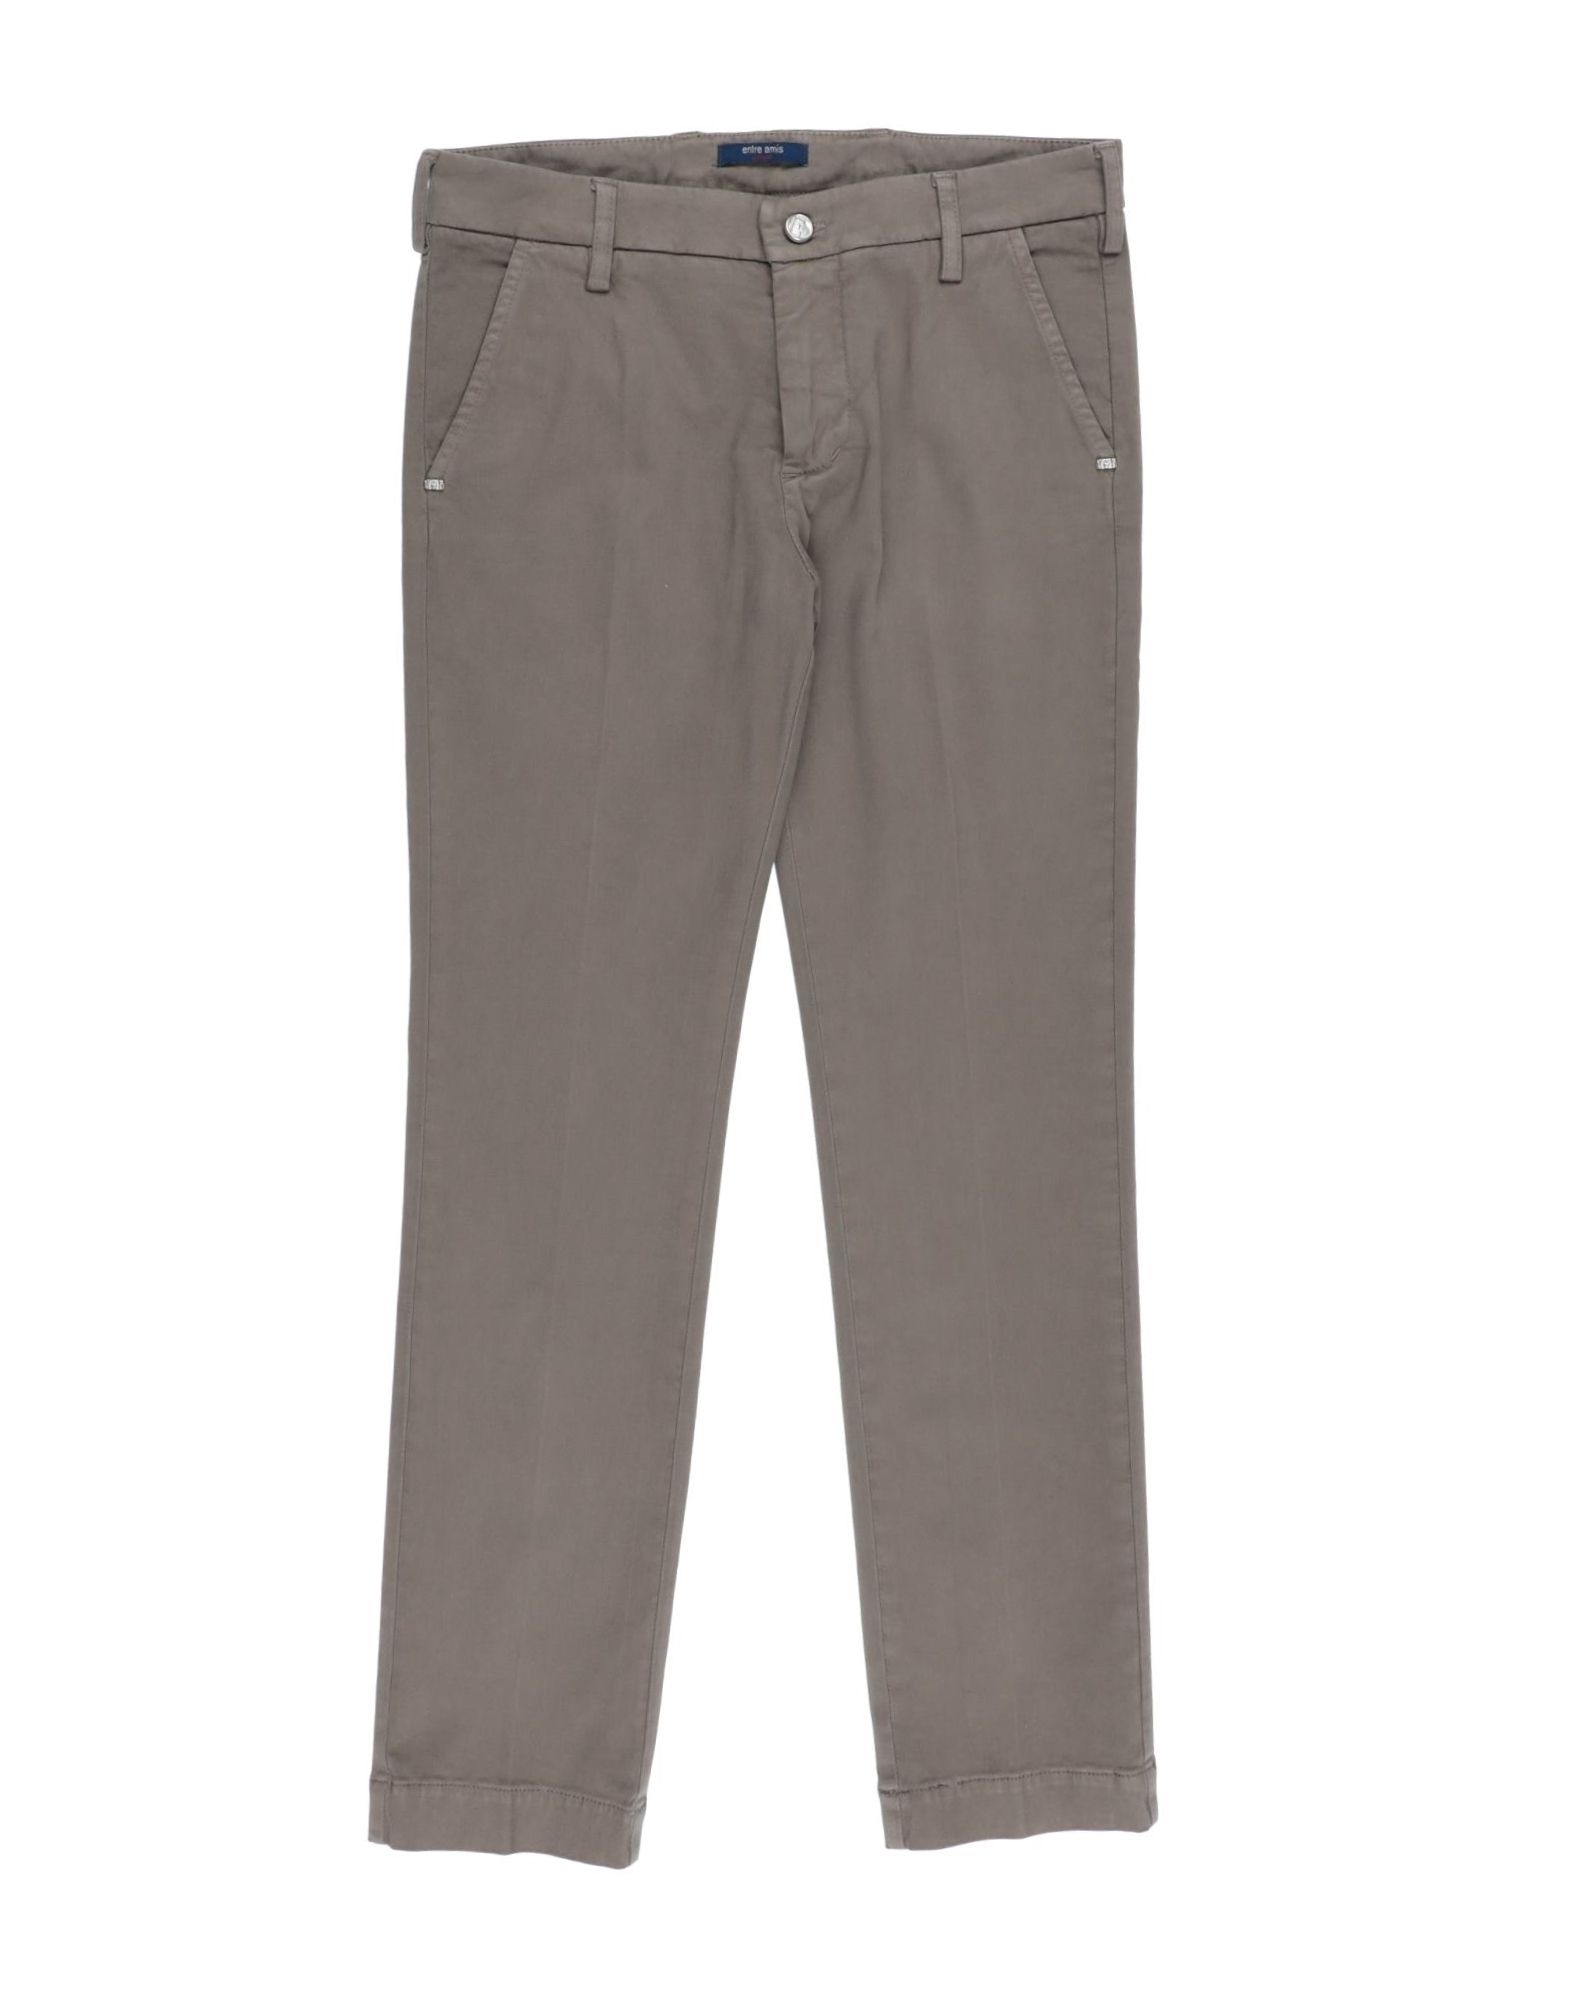 Entre Amis Kids' Casual Pants In Gray